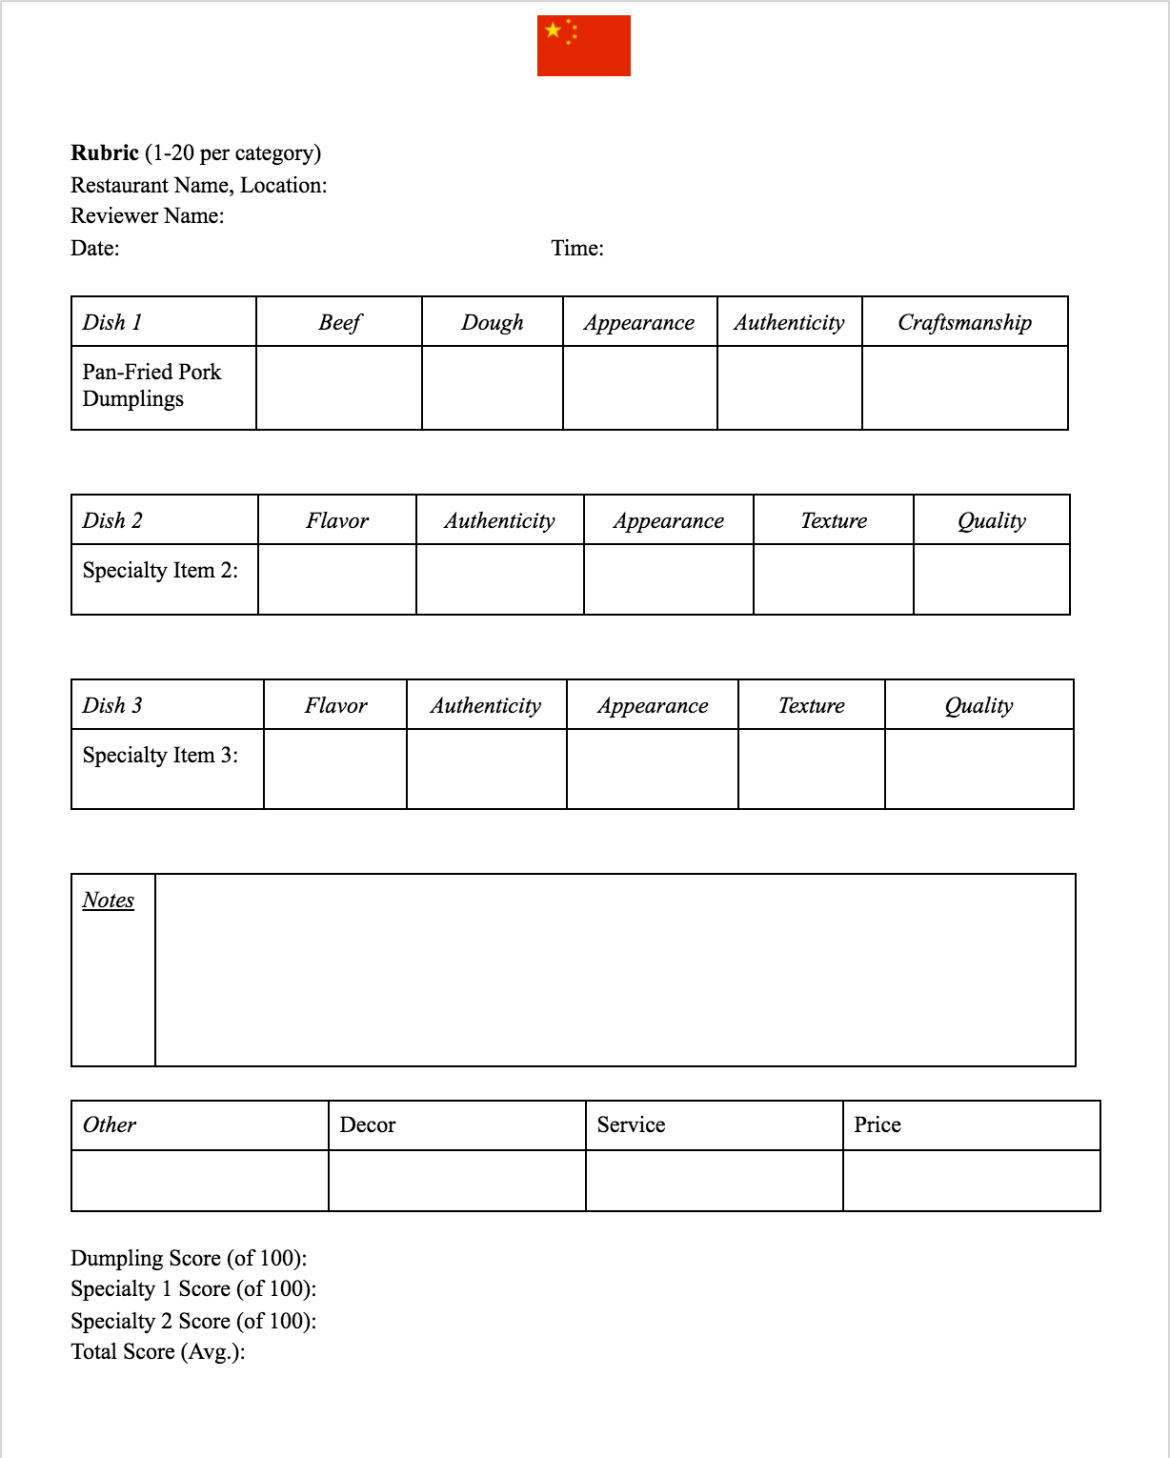 Our custom-designed rubric